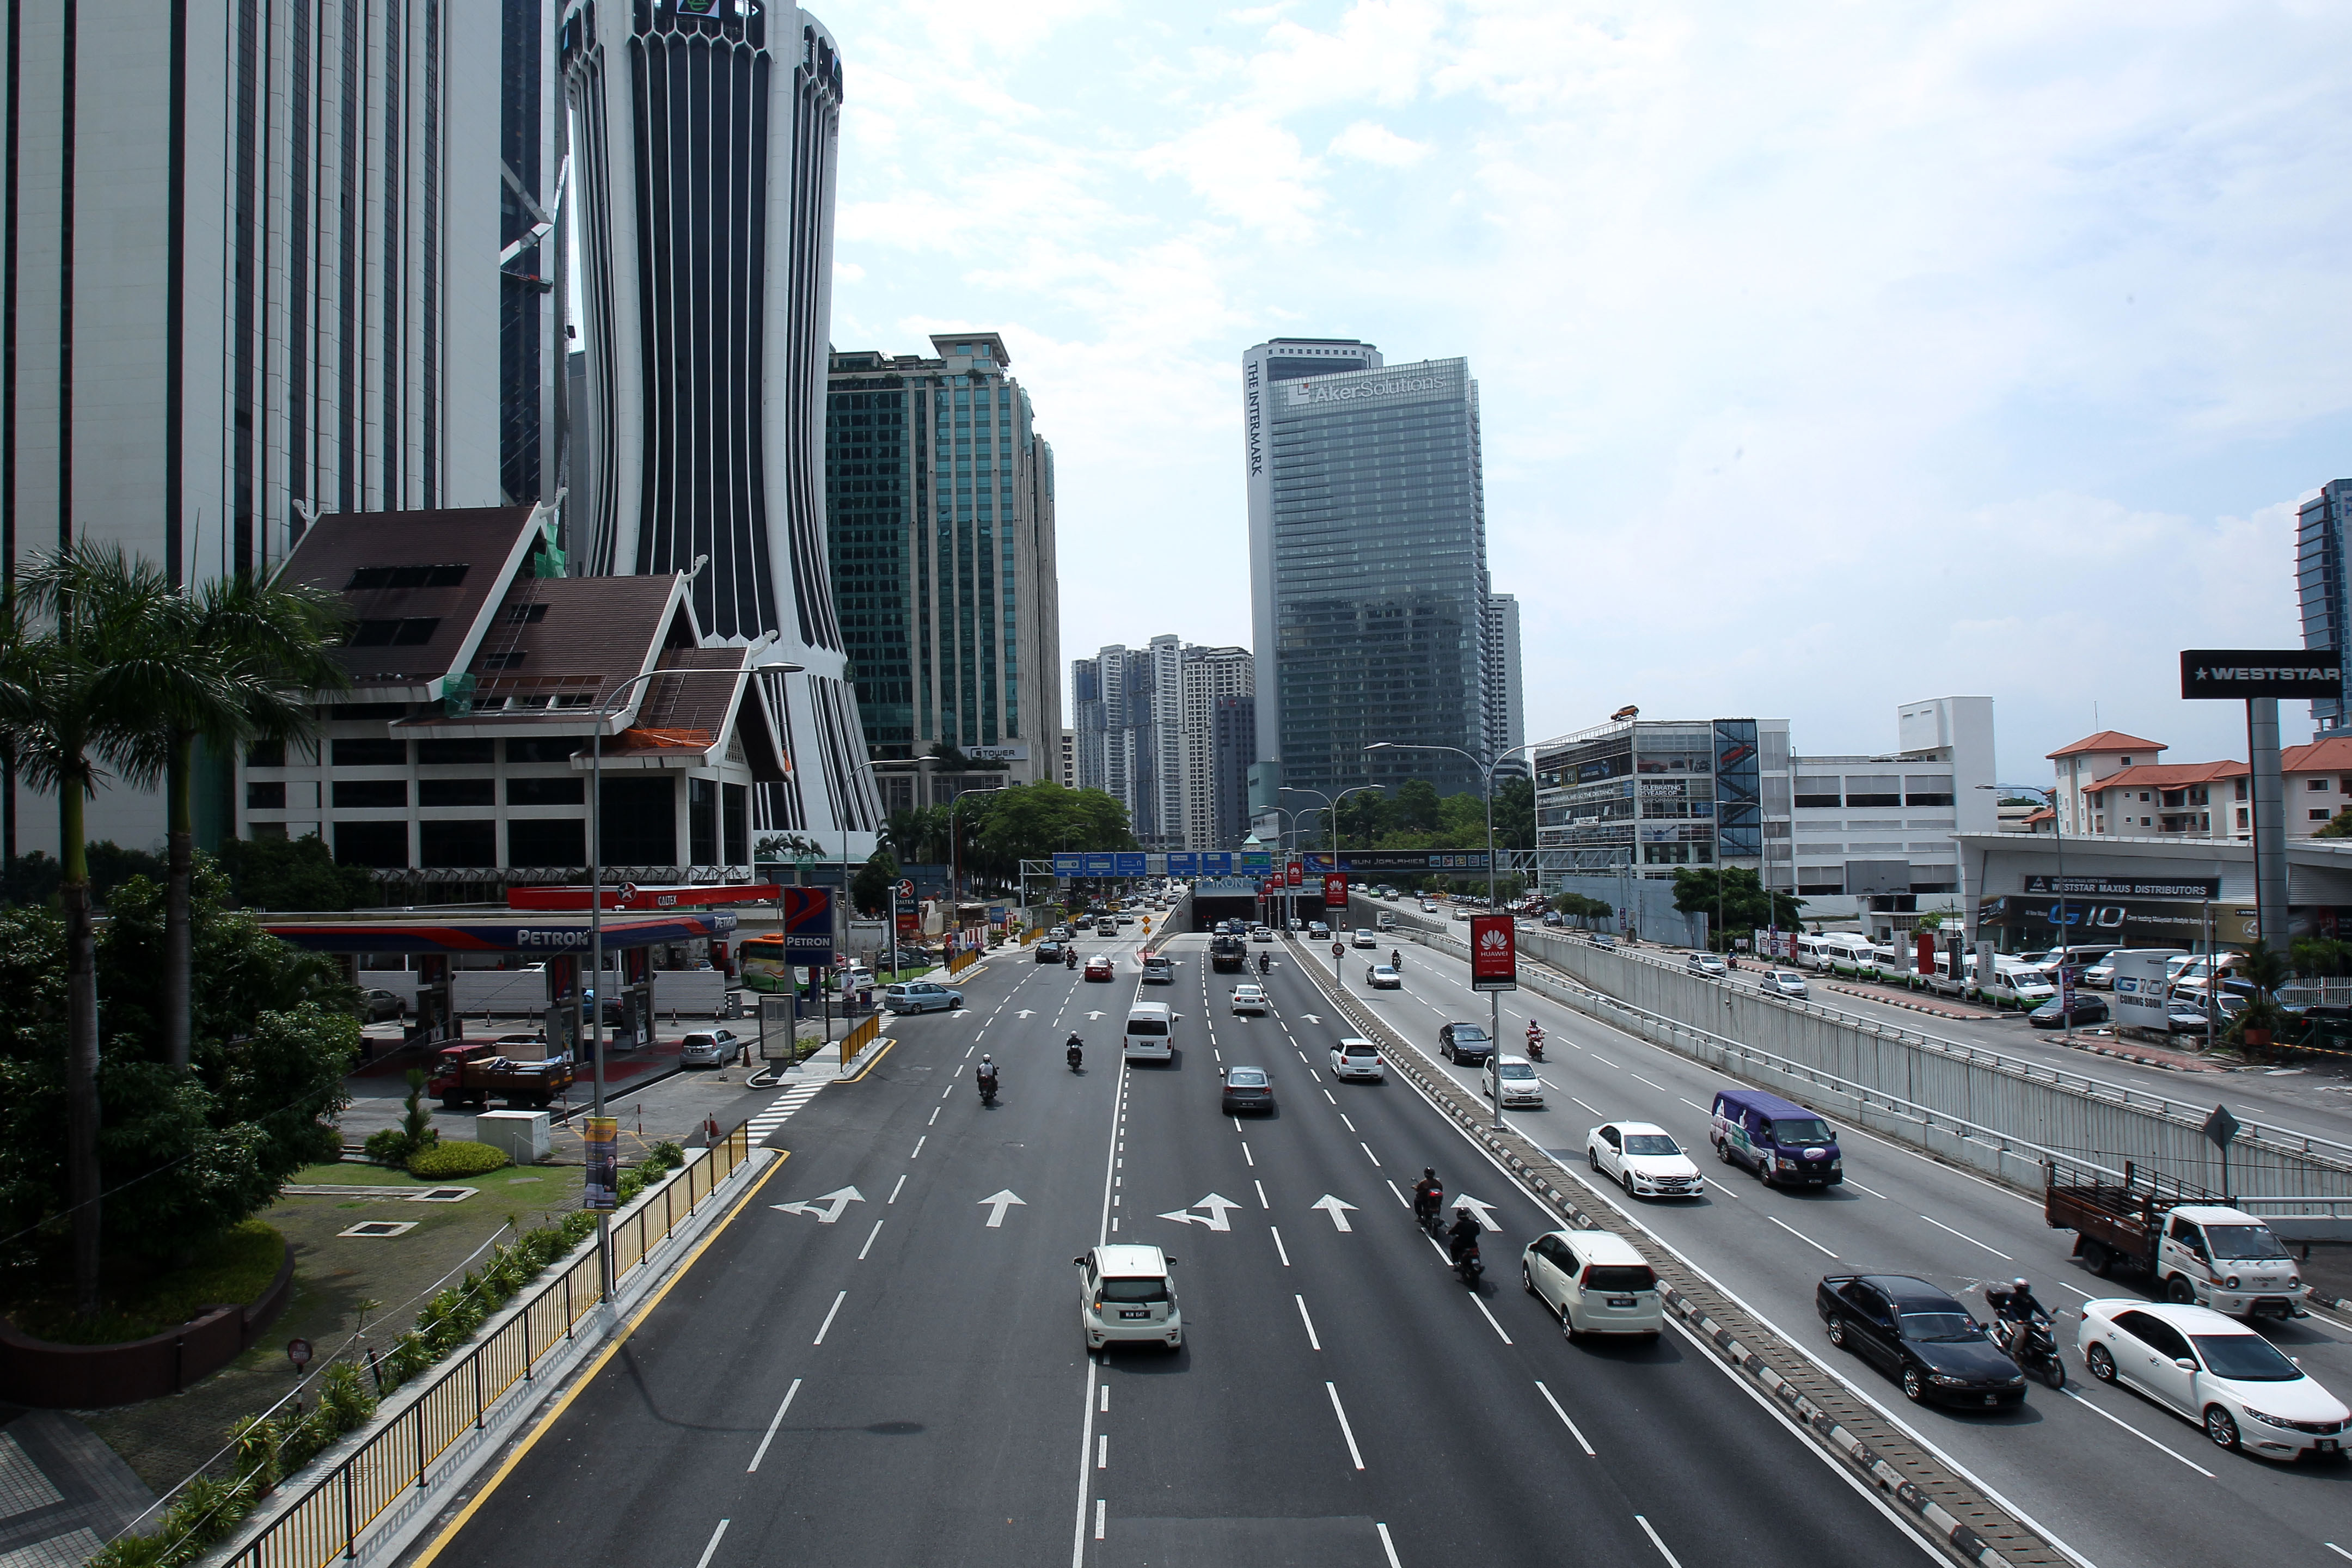 Property For Sales Or Rent In Kuala Lumpur(KL), Malaysia